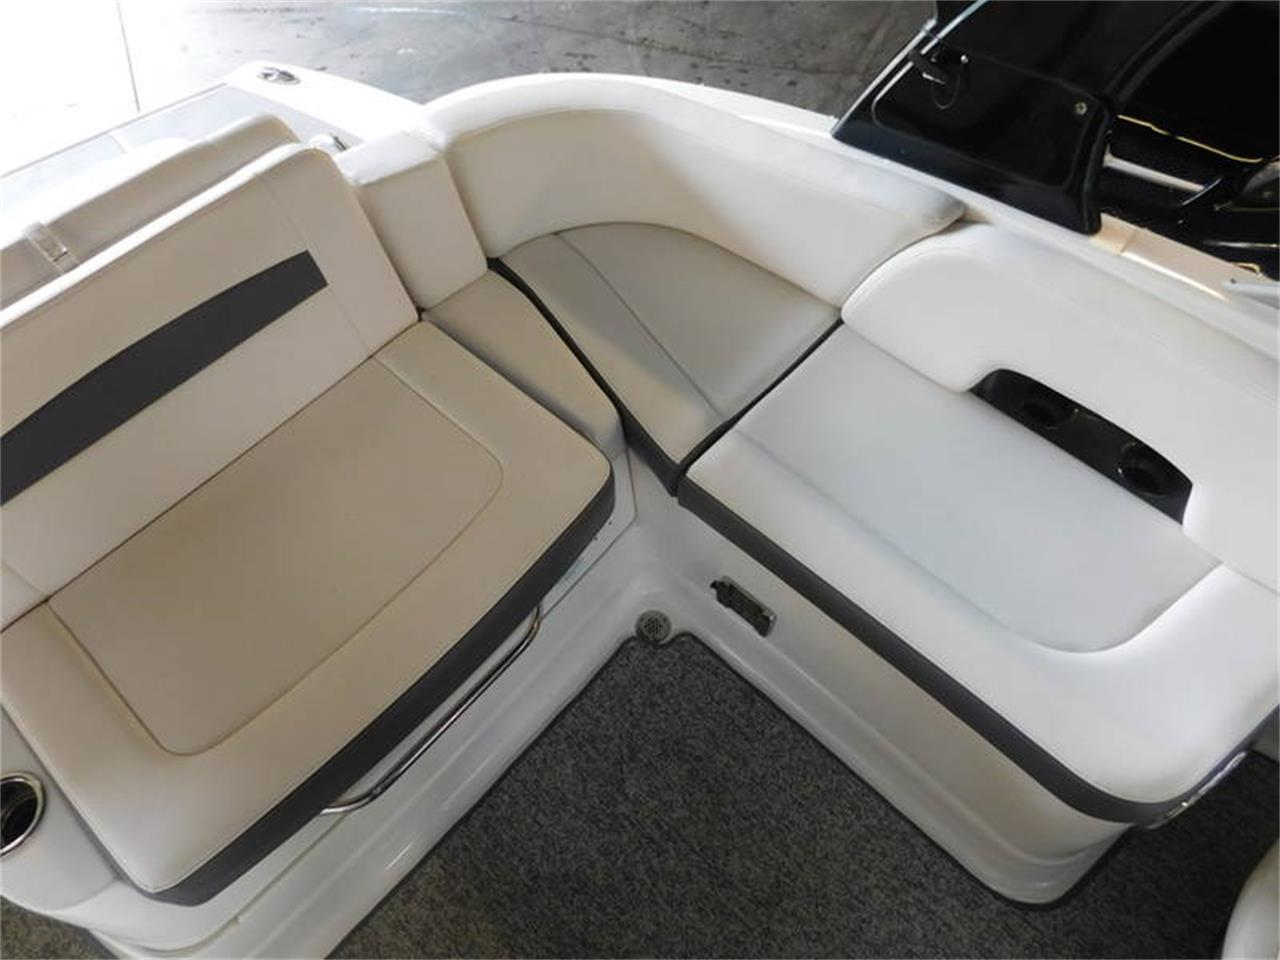 Large Picture of 2014 Boat located in New York - $59,999.00 Offered by Superior Auto Sales - NV3P